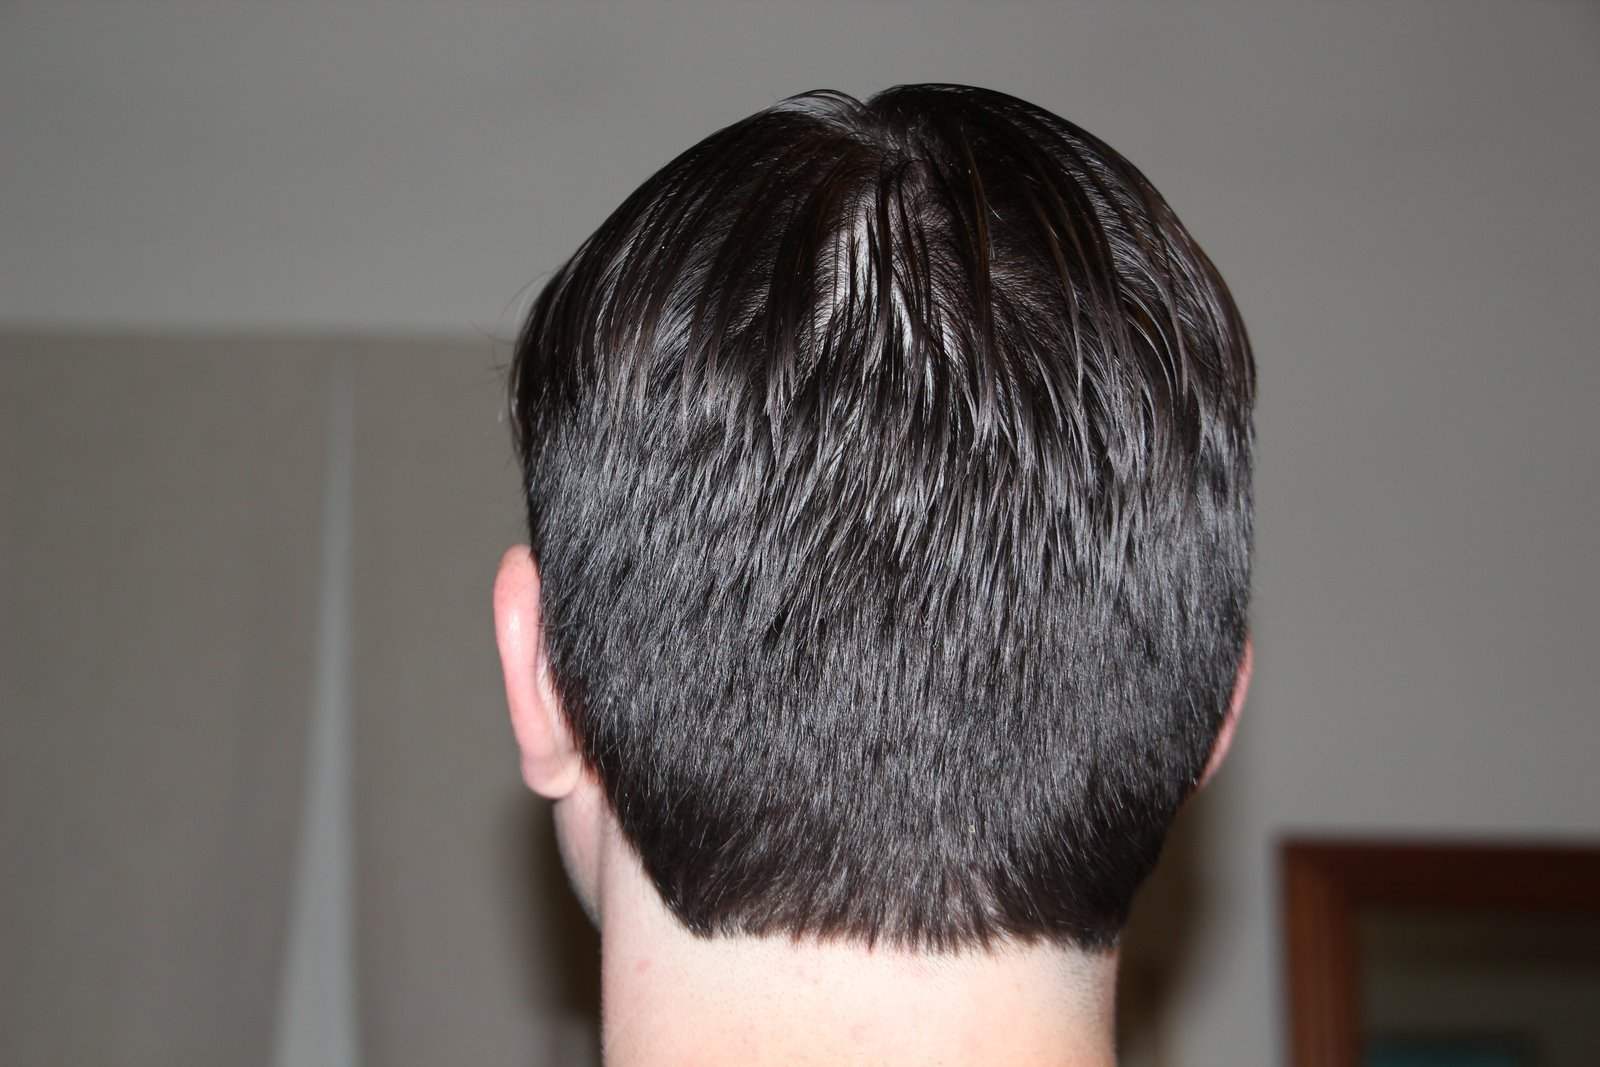 V Haircuts From The Back Gallery Haircuts 2018 Men Fade